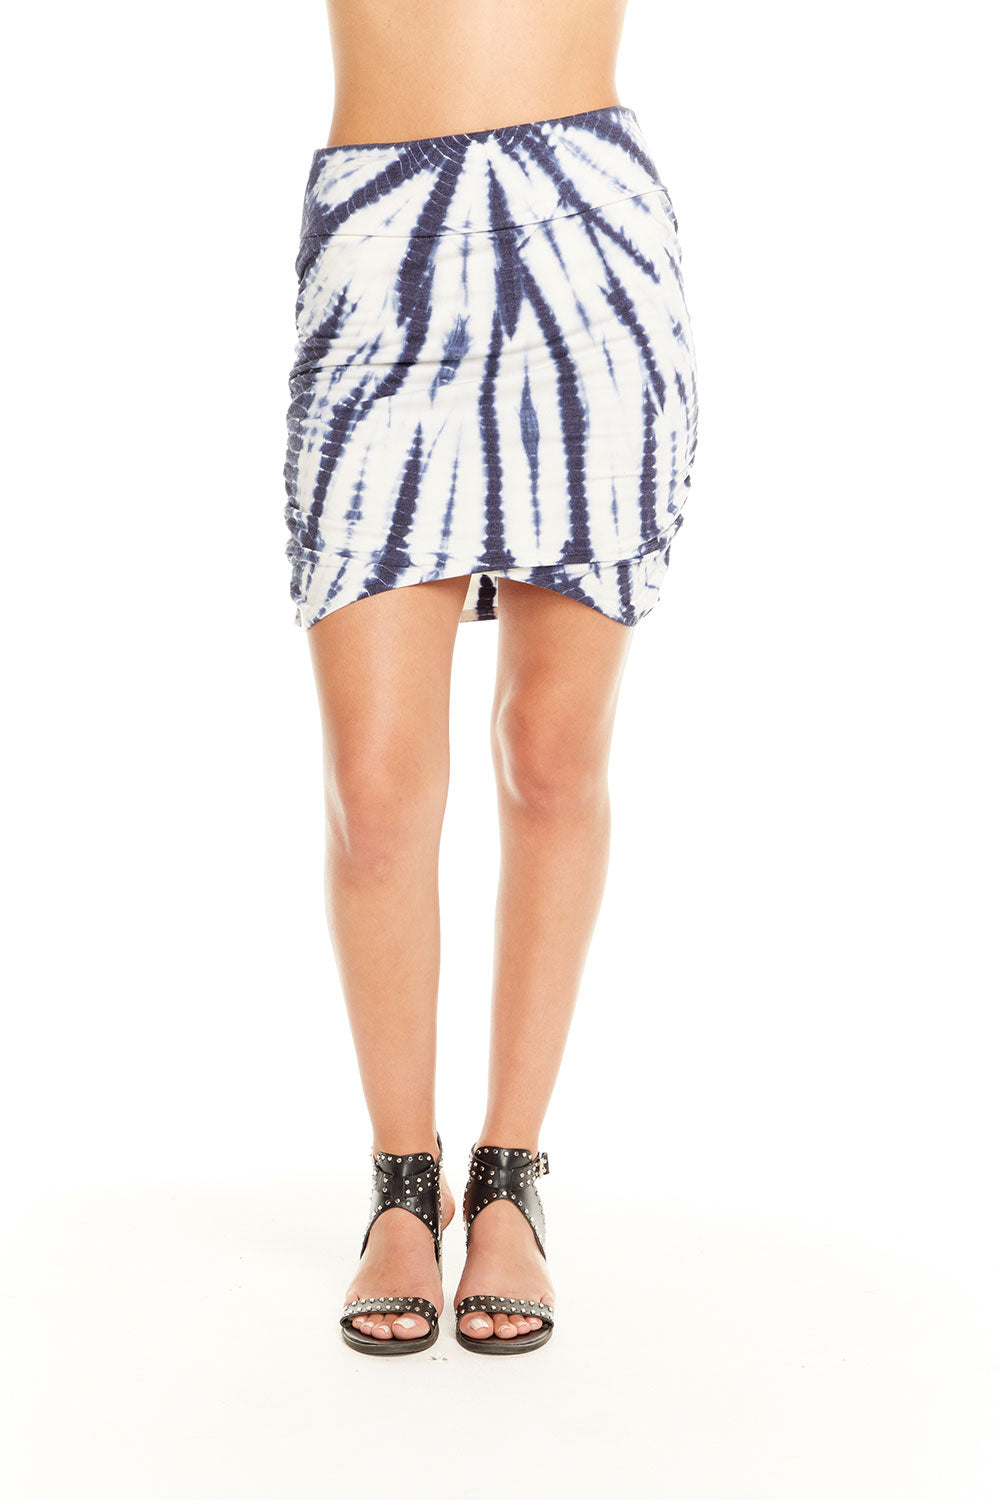 Quadrablend Ruched Asymmetrical Mini Skirt WOMENS chaserbrand4.myshopify.com